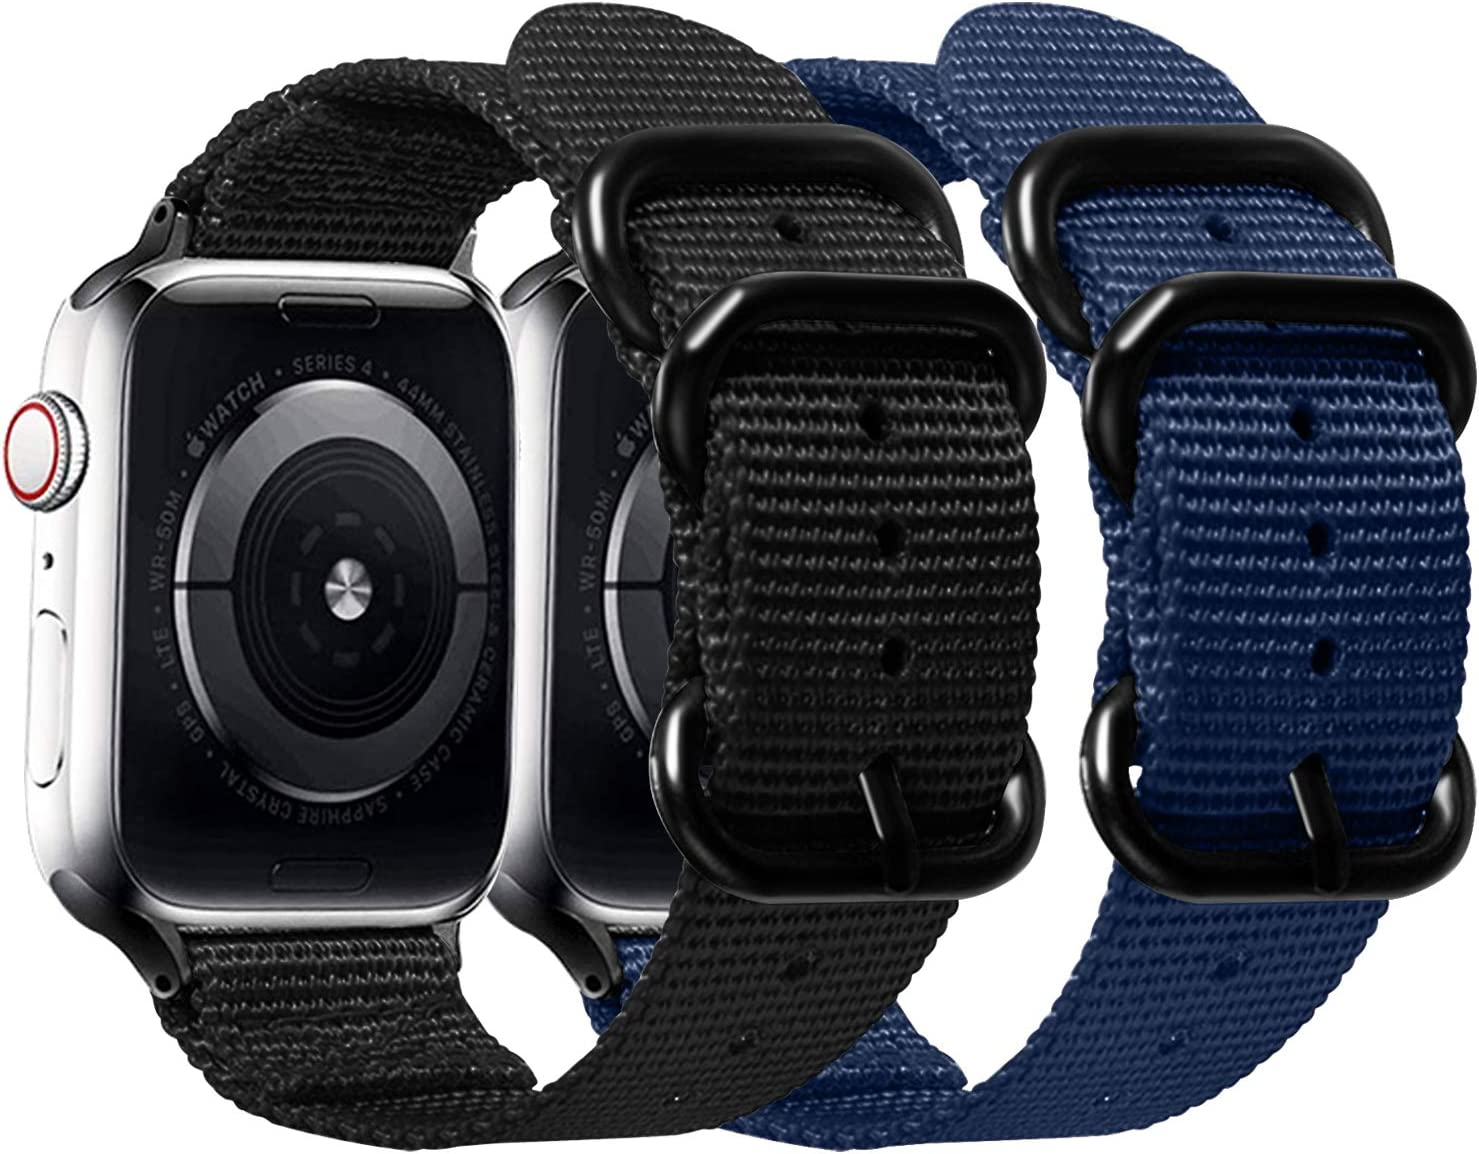 Misker Nylon Band Compatible with Apple Watch Band 44mm 42mm 40mm 38mm,Breathable Sport Strap with Metal Buckle Compatible with iwatch Series 5/4/3/2/1 (2-Packs Black/Navy Blue, 42mm/44mm)